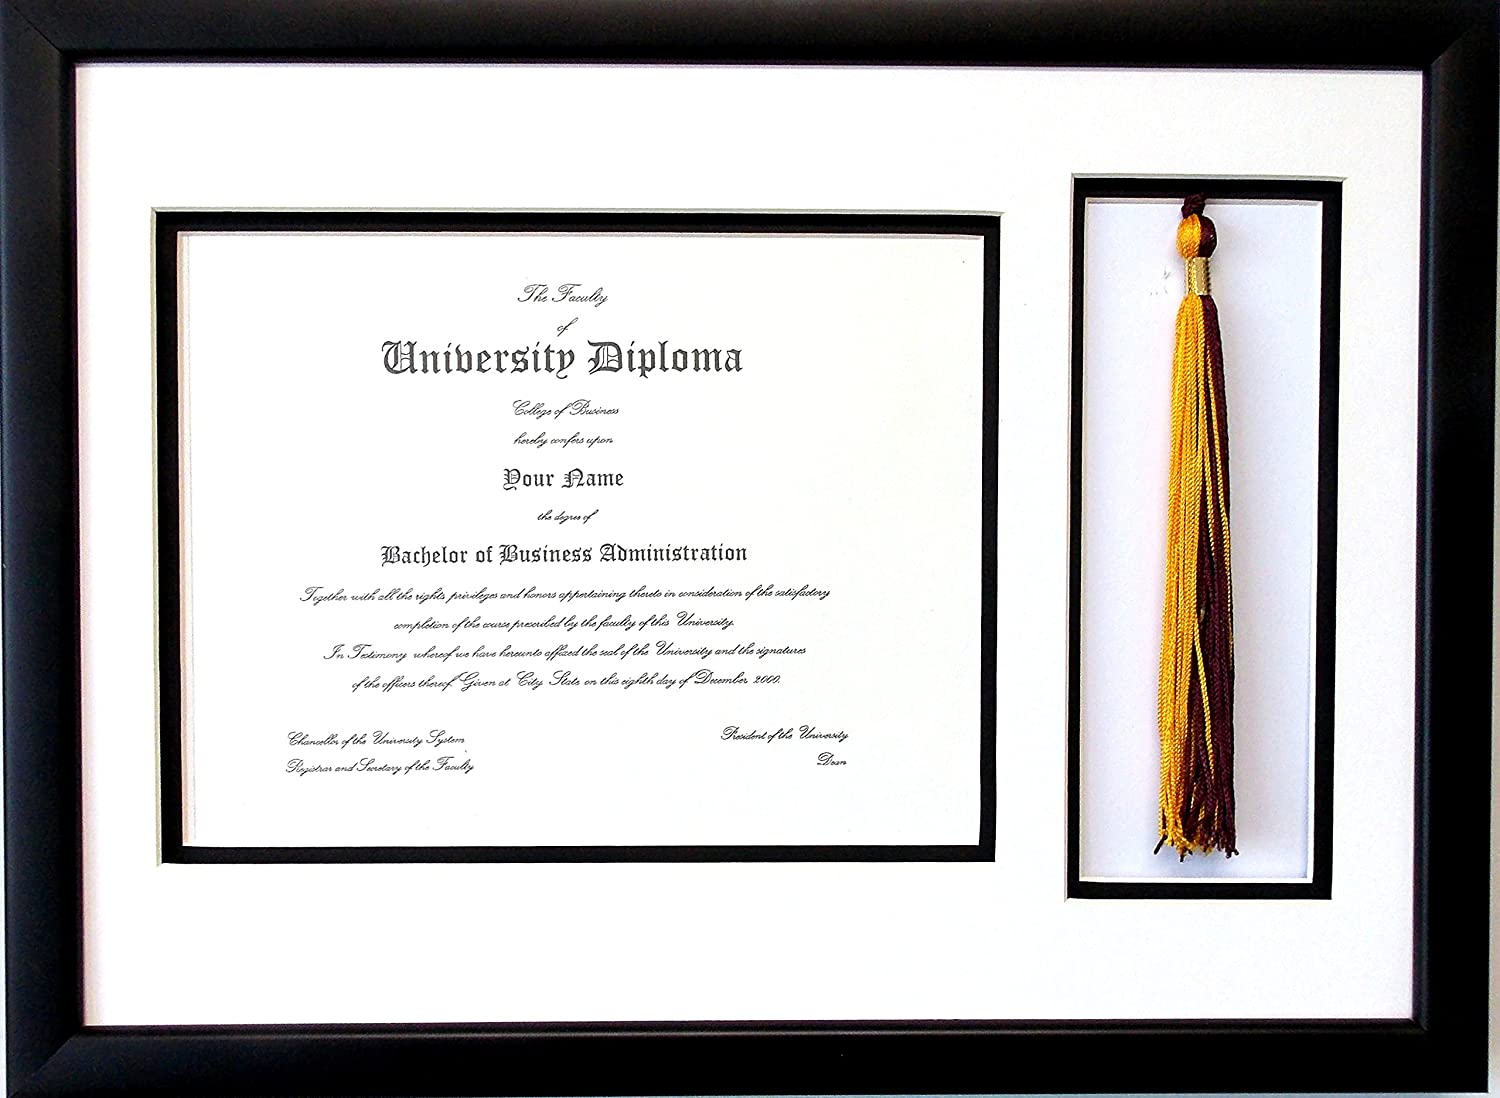 Graduation Certificate Diploma Document 8.5x11 Tassel Opening Custom Black Picture Frame Unit Photo Frame Ready